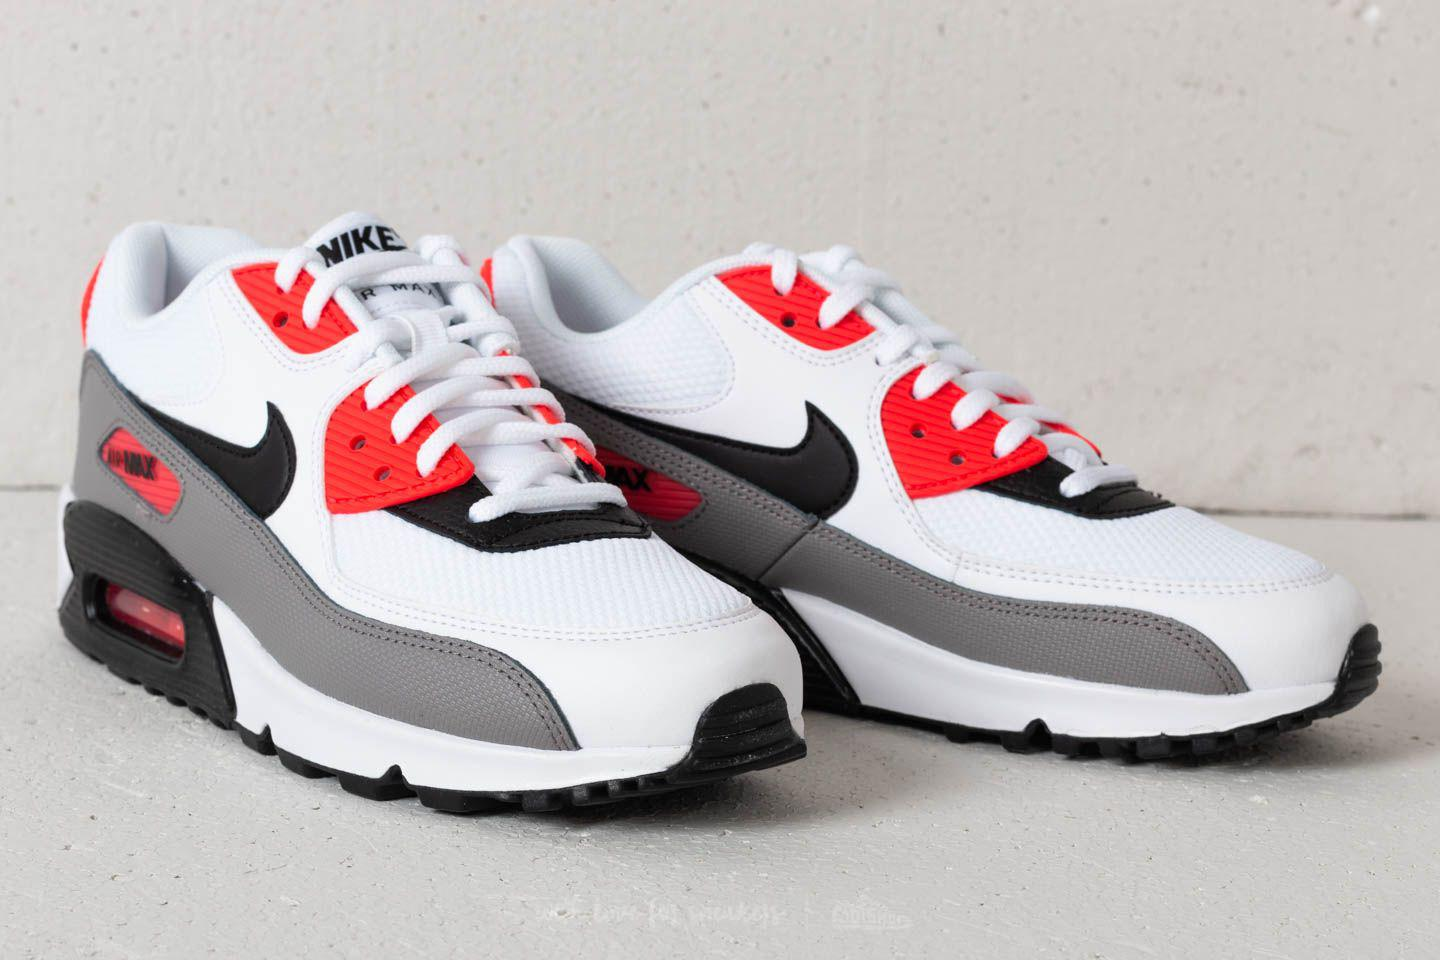 Nike Leather Wmns Air Max 90 White Black Dust Solar Red Lyst